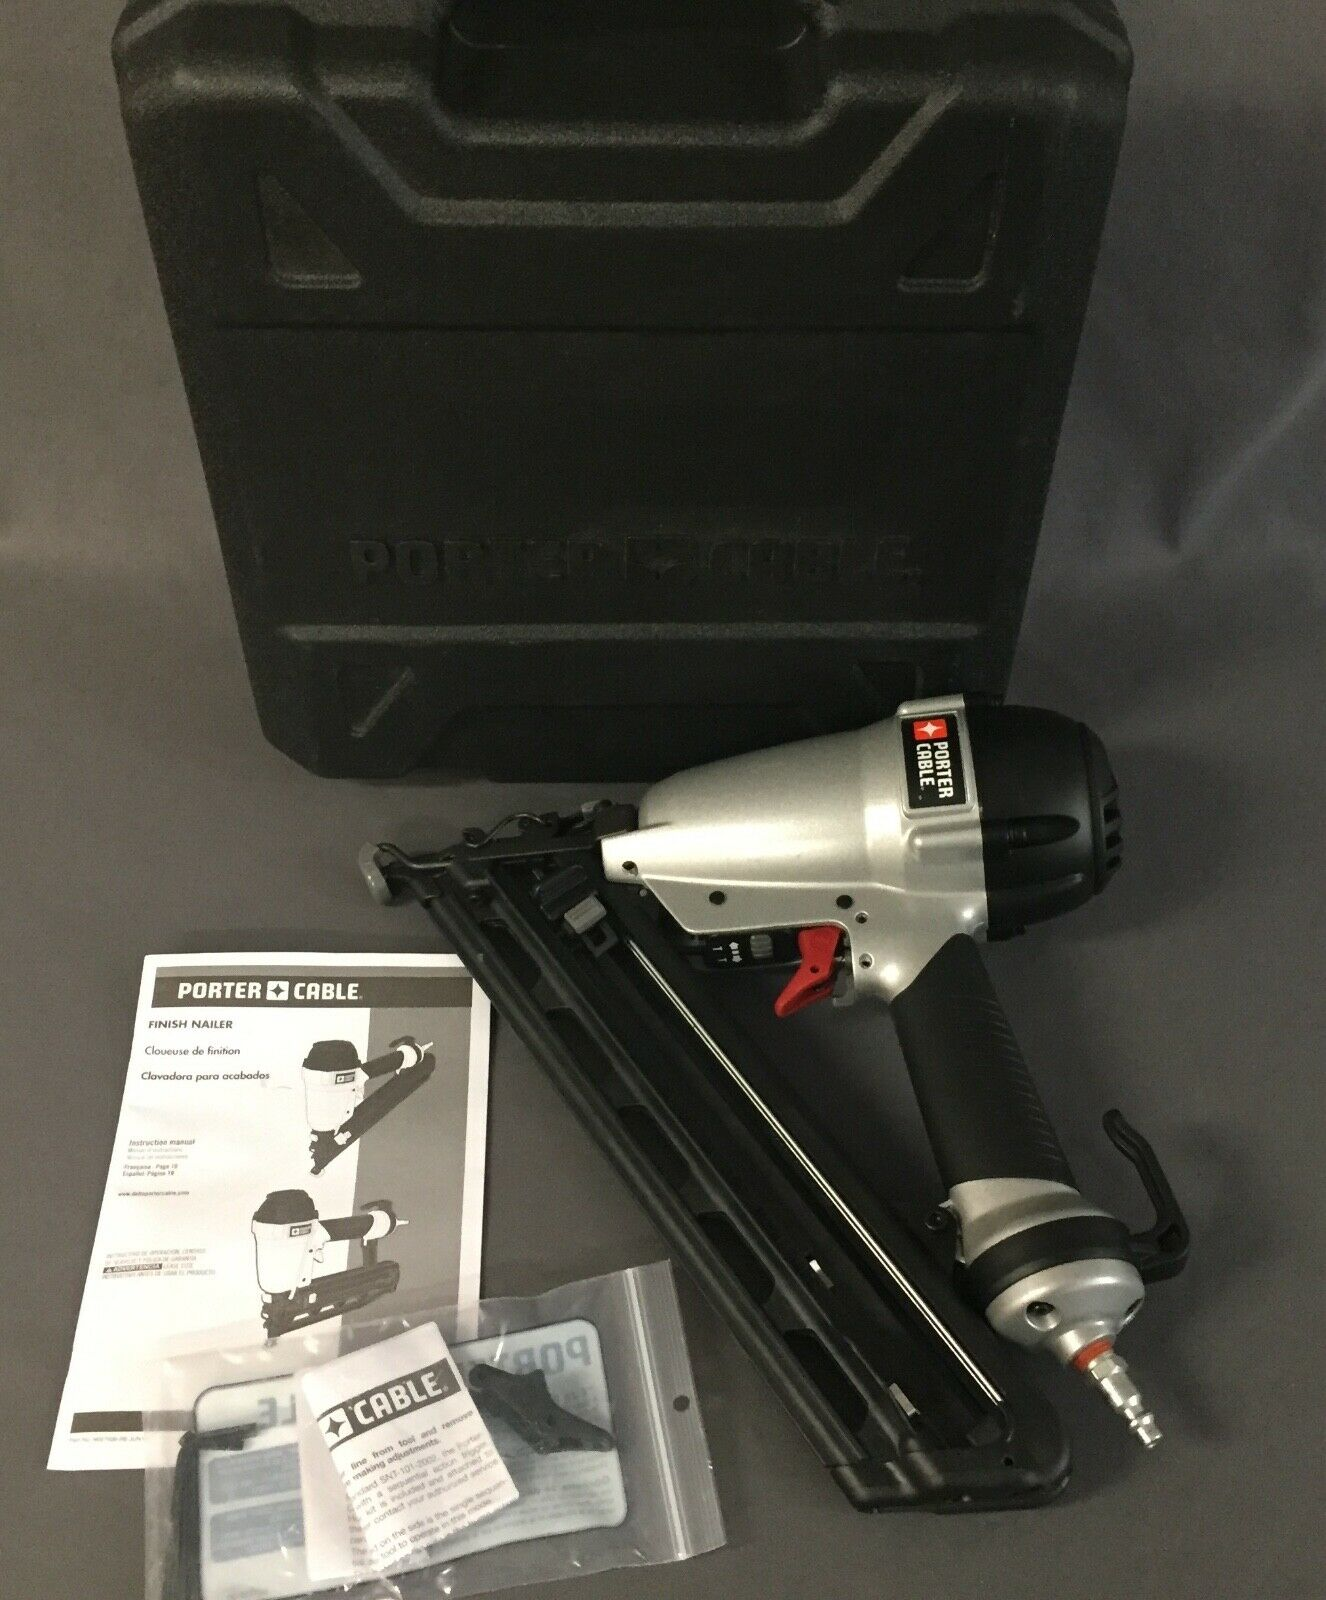 Porter-Cable 15-Gauge Pneumatic 2-1 2 in. Angled Nailer Kit DA250C [A]